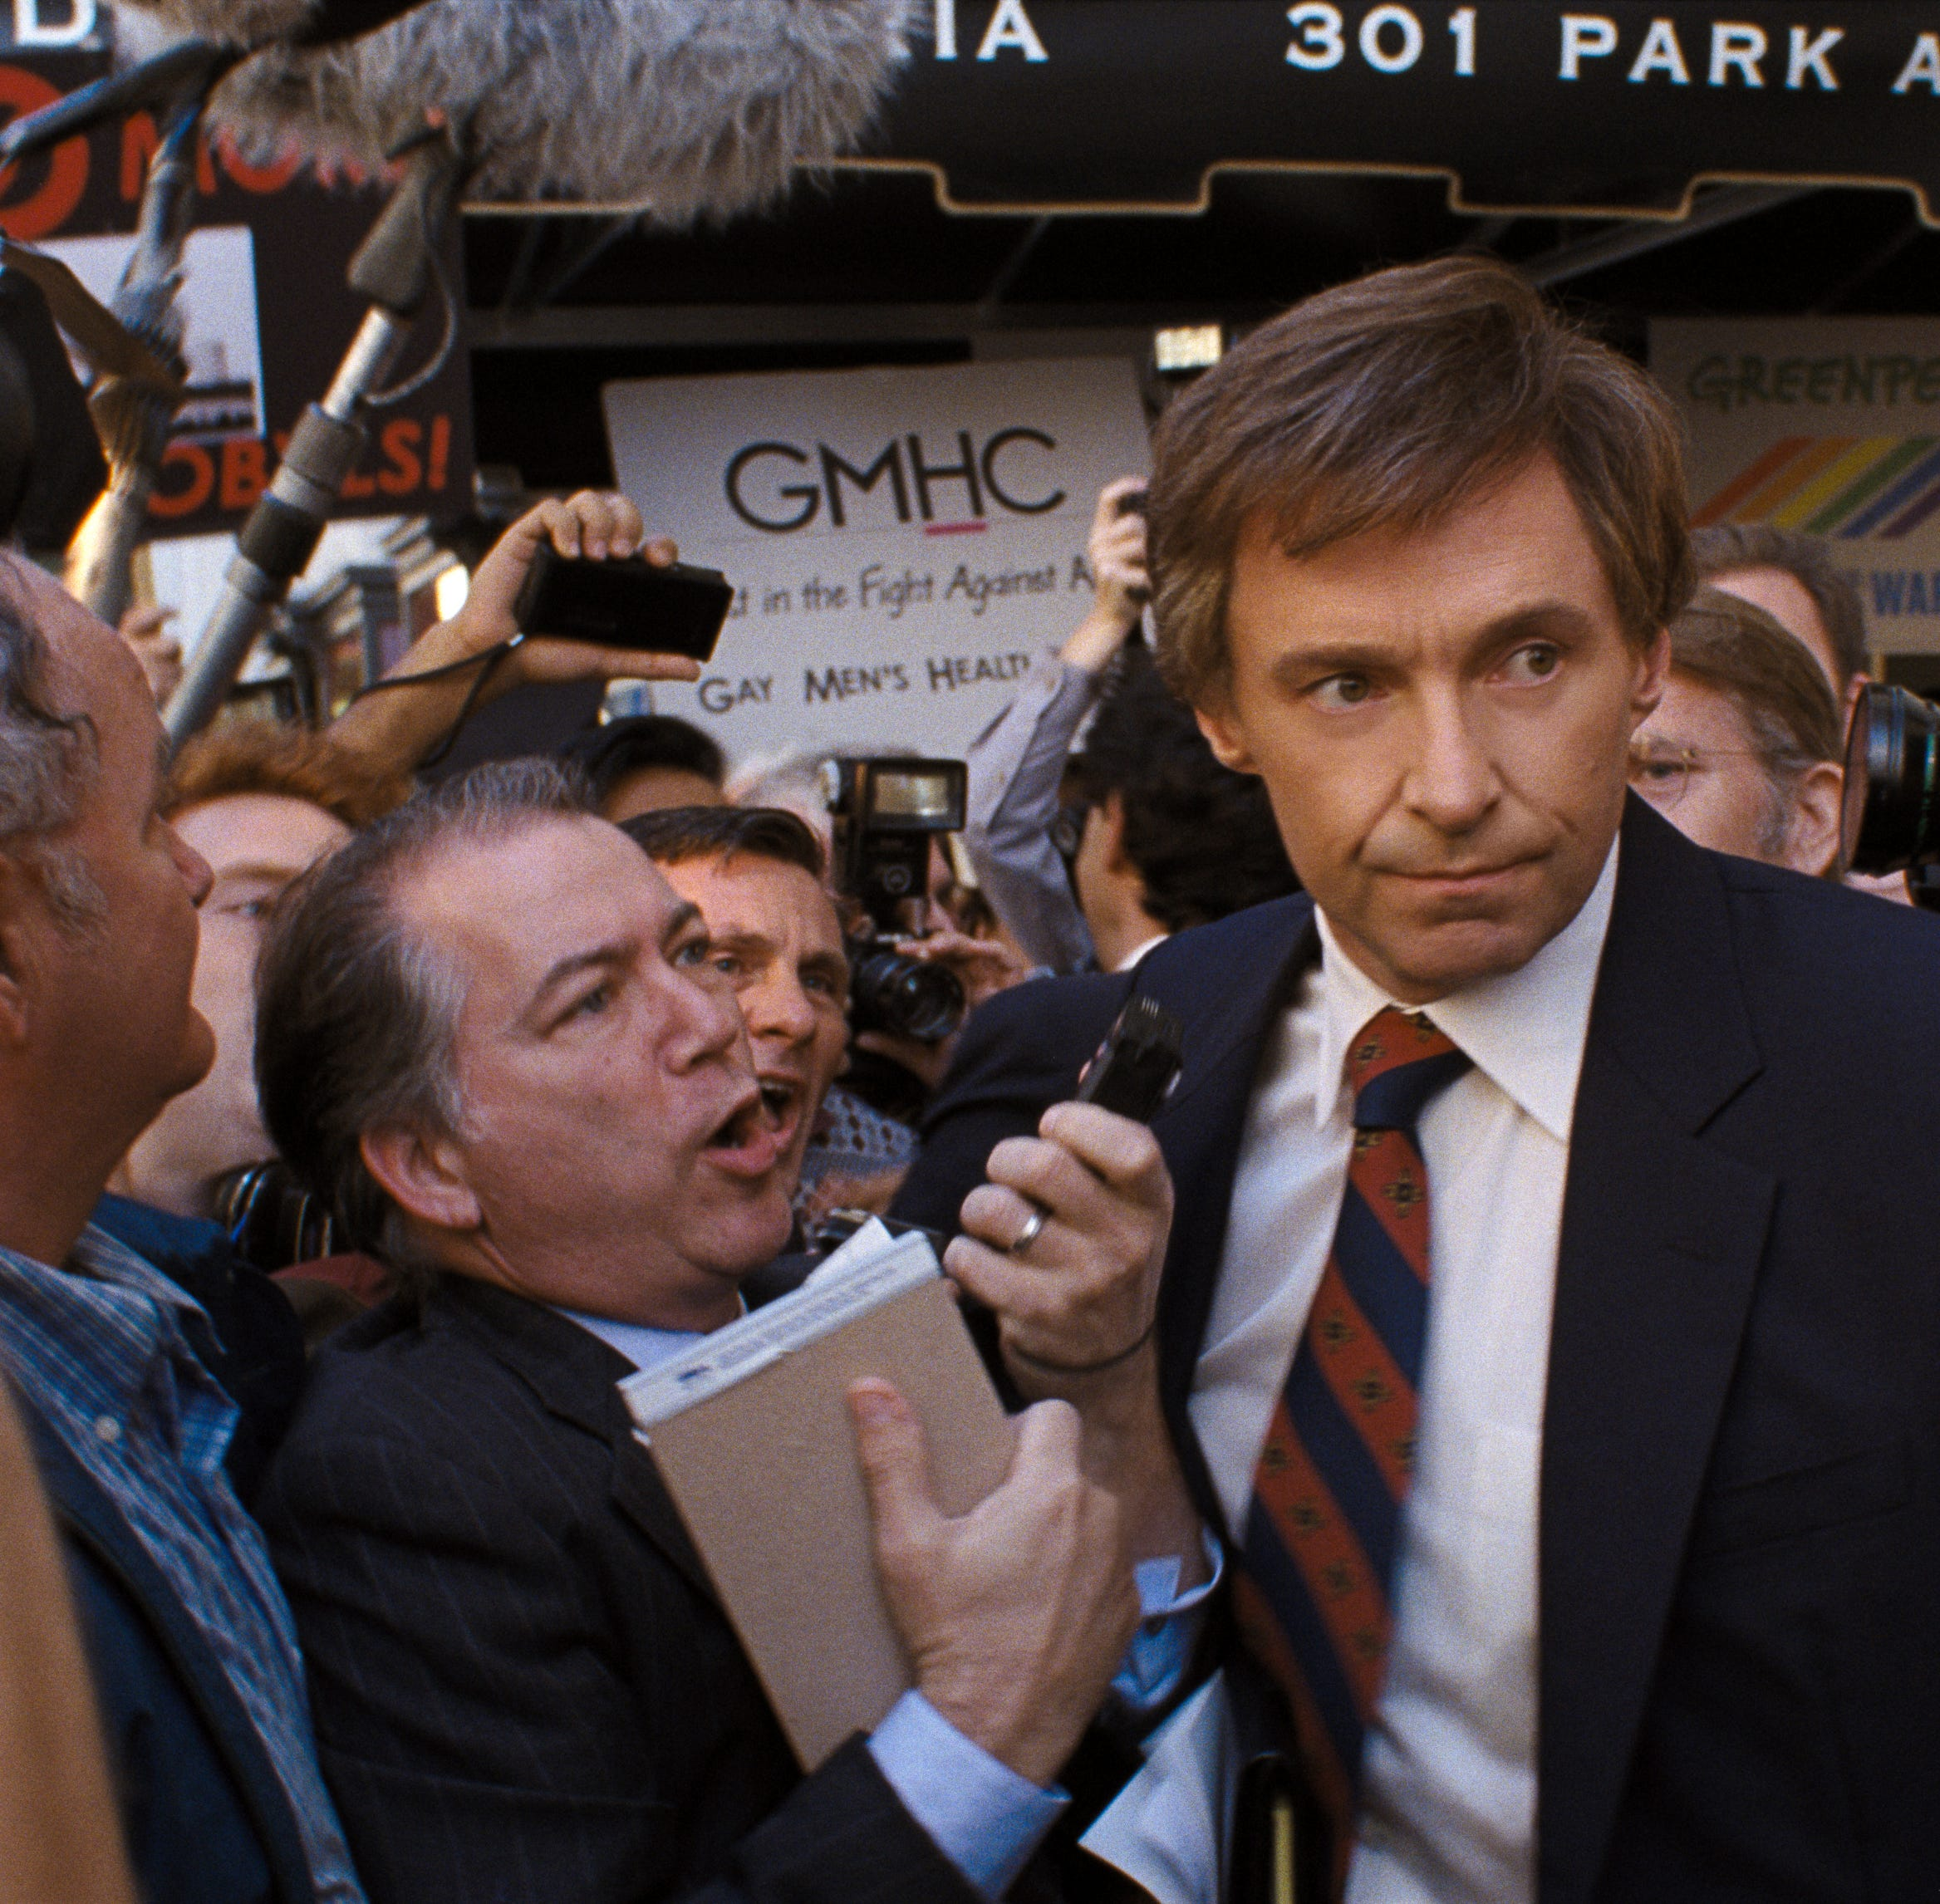 Fascinating 'Front Runner' revisits Gary Hart scandal